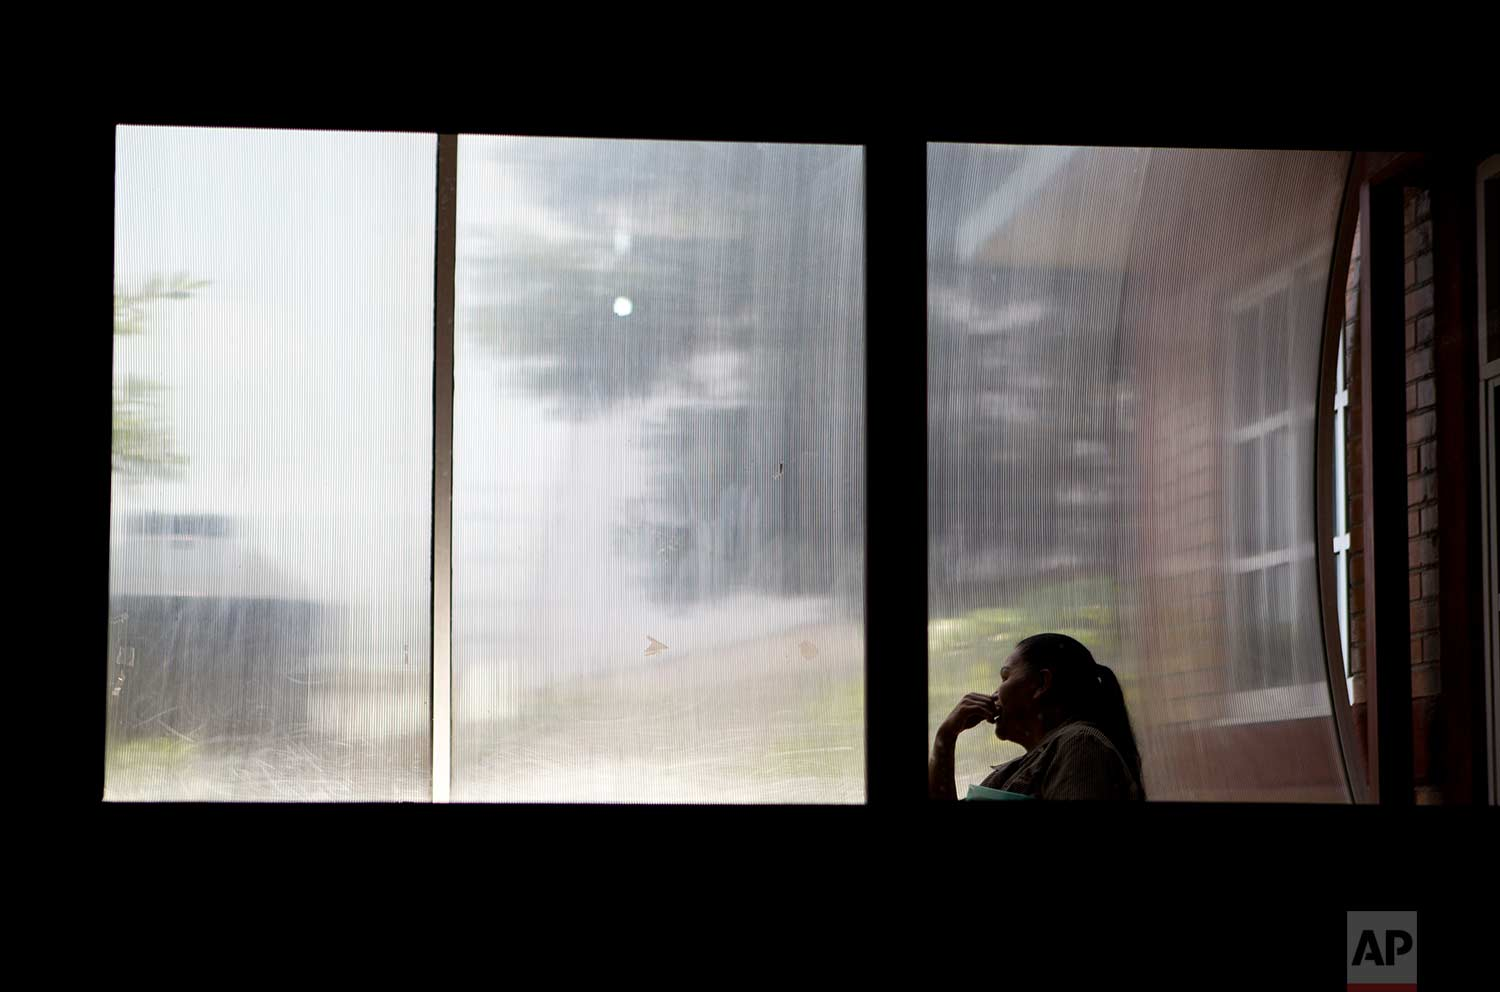 In this Aug. 15, 2007 photo, a woman sits in front of a window inside a nursing school in Nezahualcoyotl, Mexico state. The nonprofit Citizen Observatory Against Gender Violence, Disappearance and Femicides in Mexico State counted 263 femicides in 2016 alone. (AP Photo/Rebecca Blackwell)